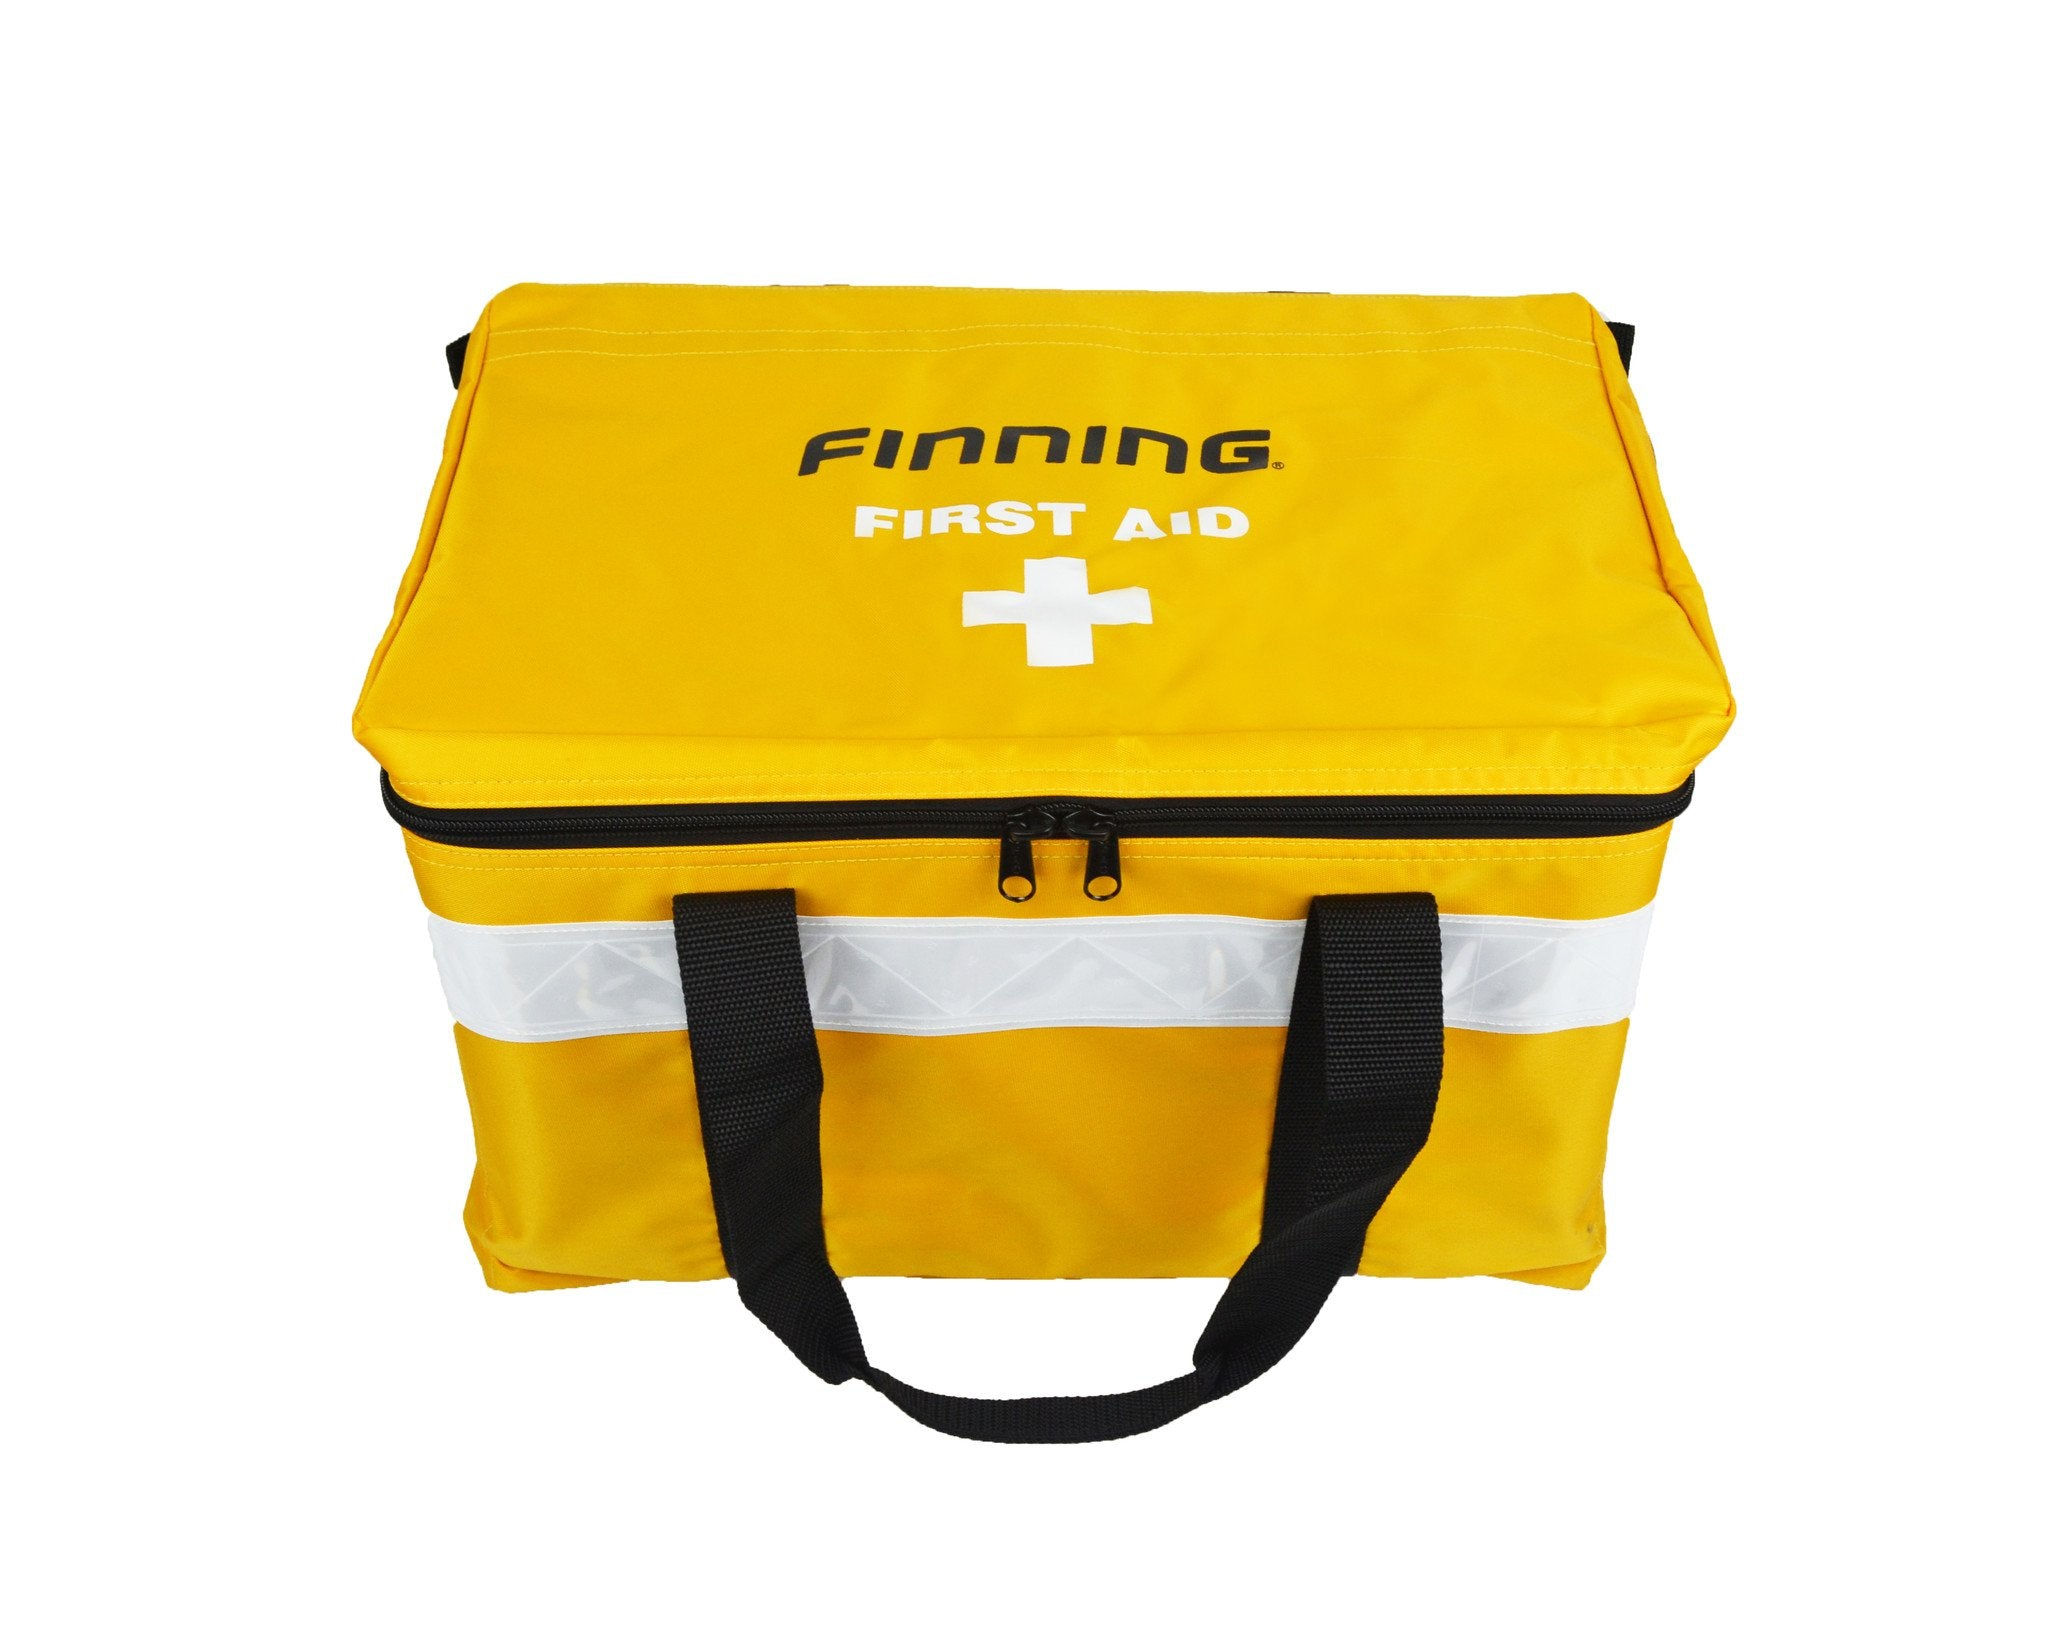 MKIT1350 - Level 1 First Aid Kit